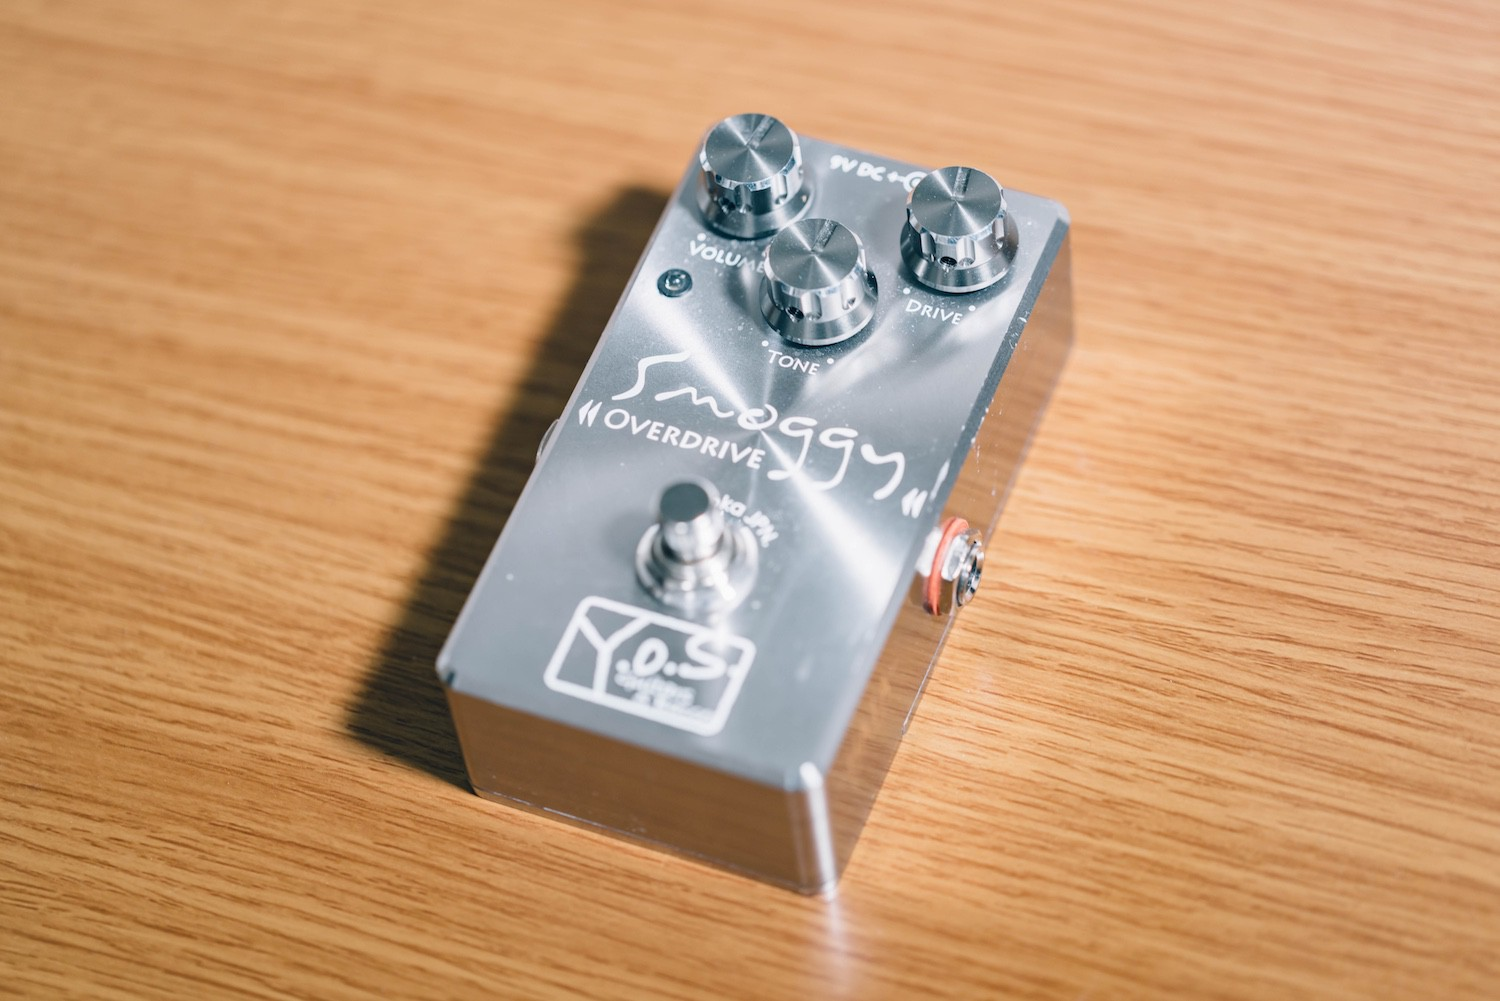 Smoggy overdrive 2